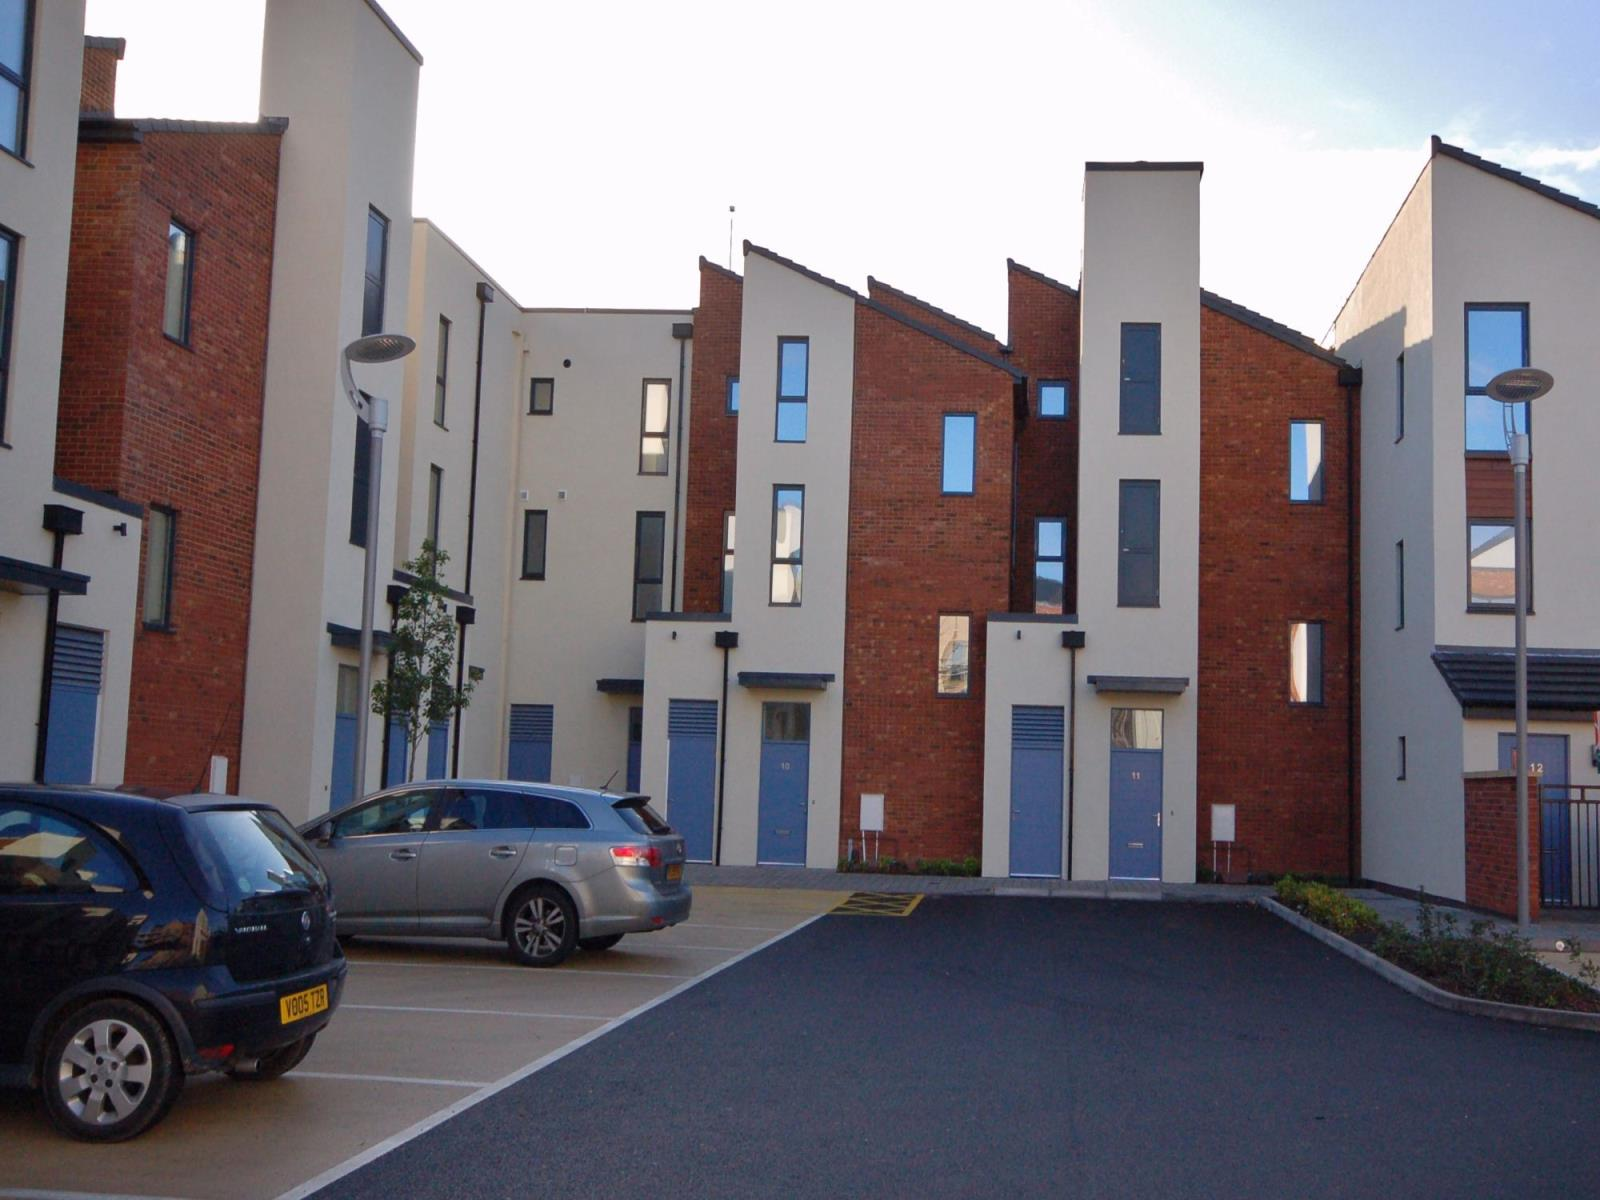 2 Bedrooms Flat for rent in 10 Barrack Close, Telford, TF3